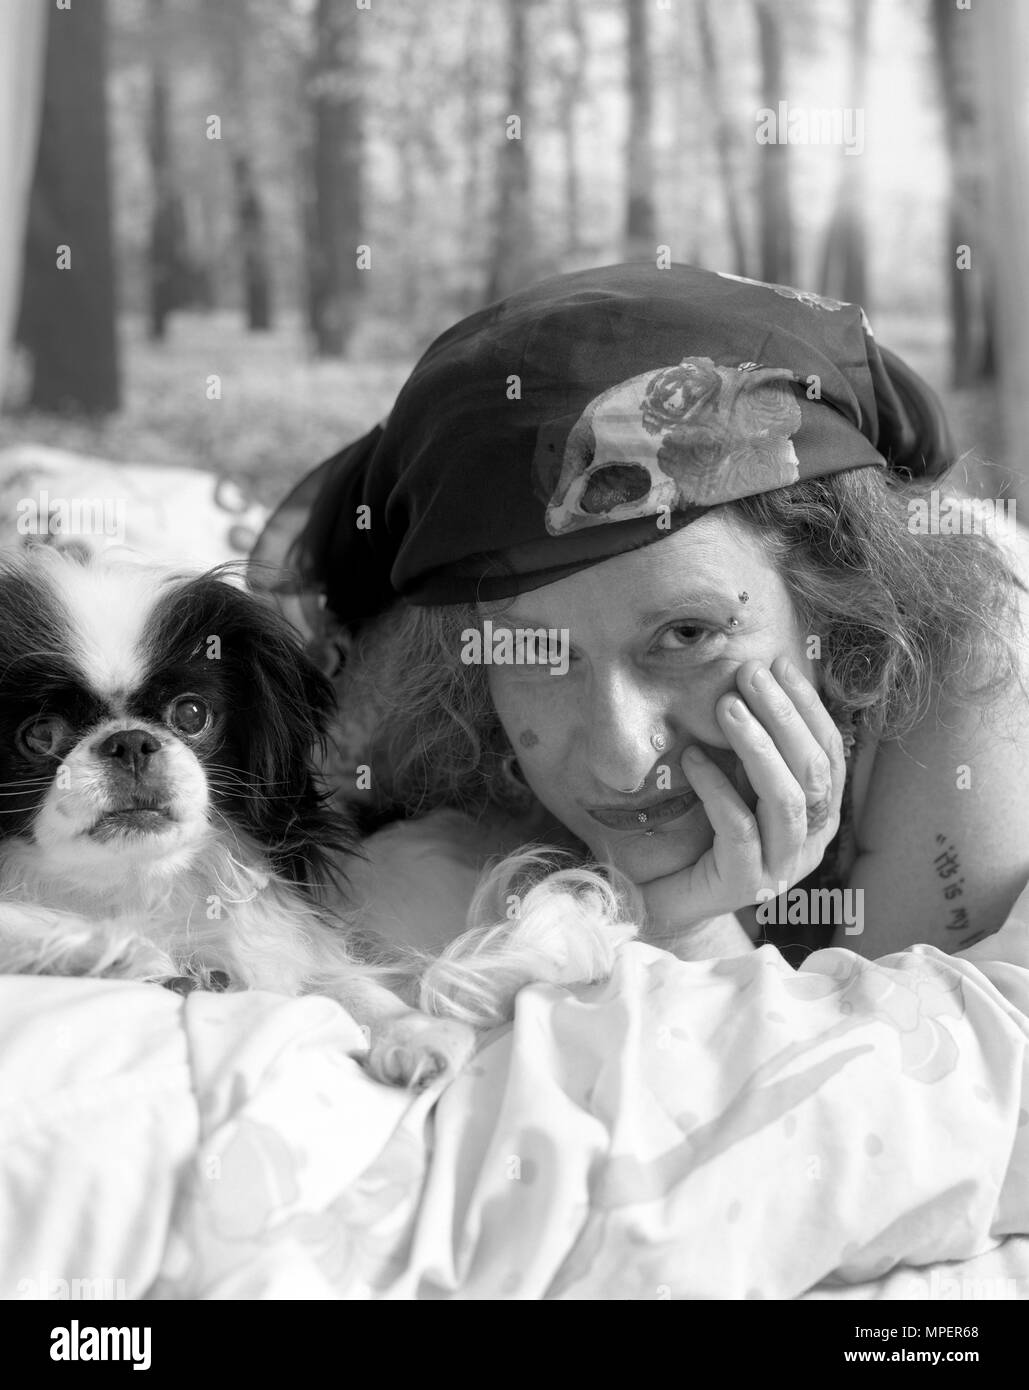 Woman in bed with her Japanese Chin dog. - Stock Image